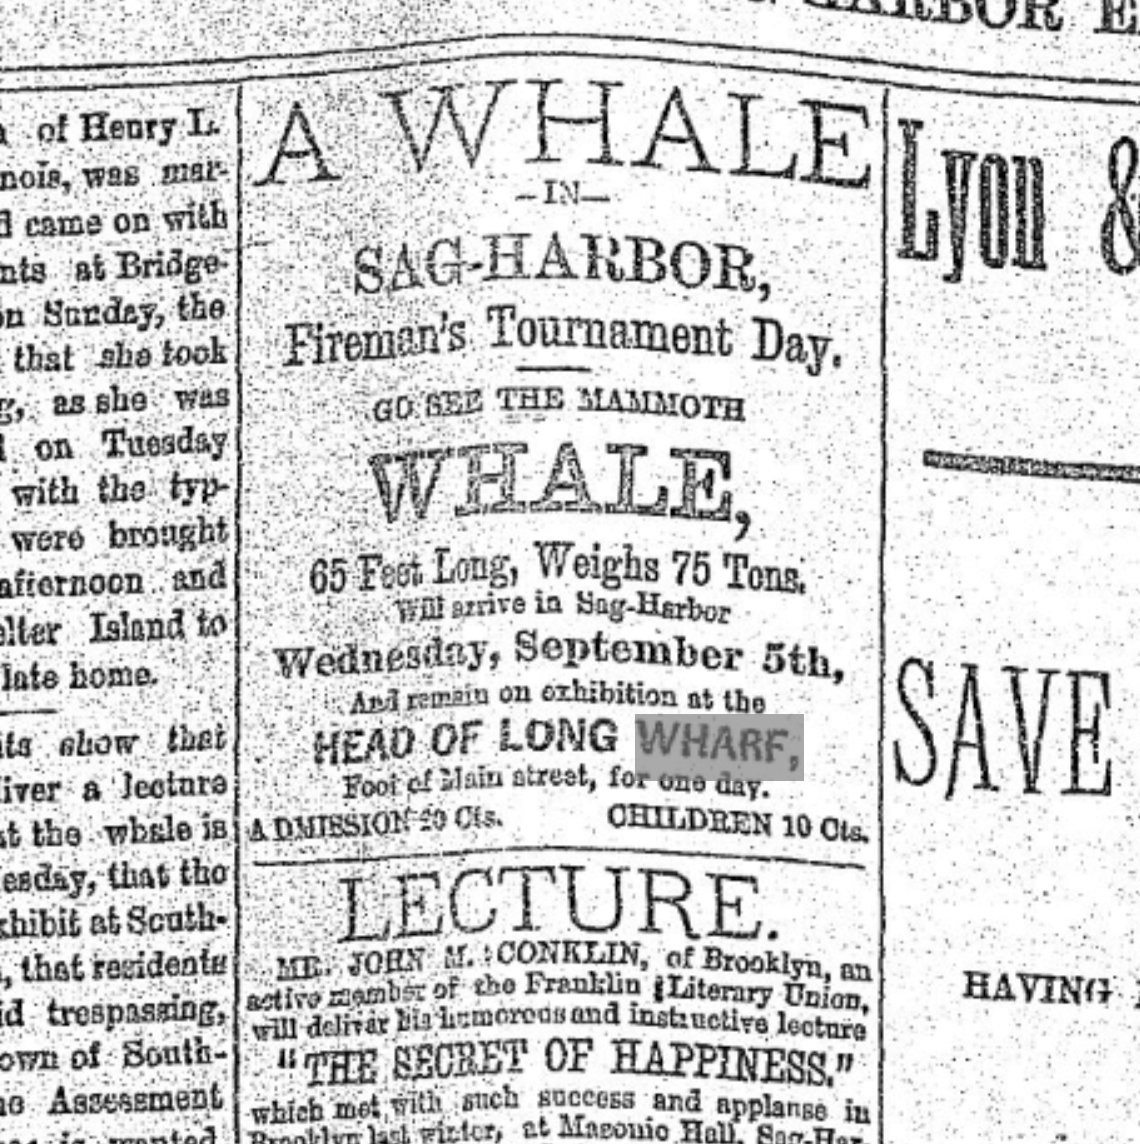 An advertisement that appeared in the August 6, 1888 edition of The Sag Harbor Express for the whale exhibit.